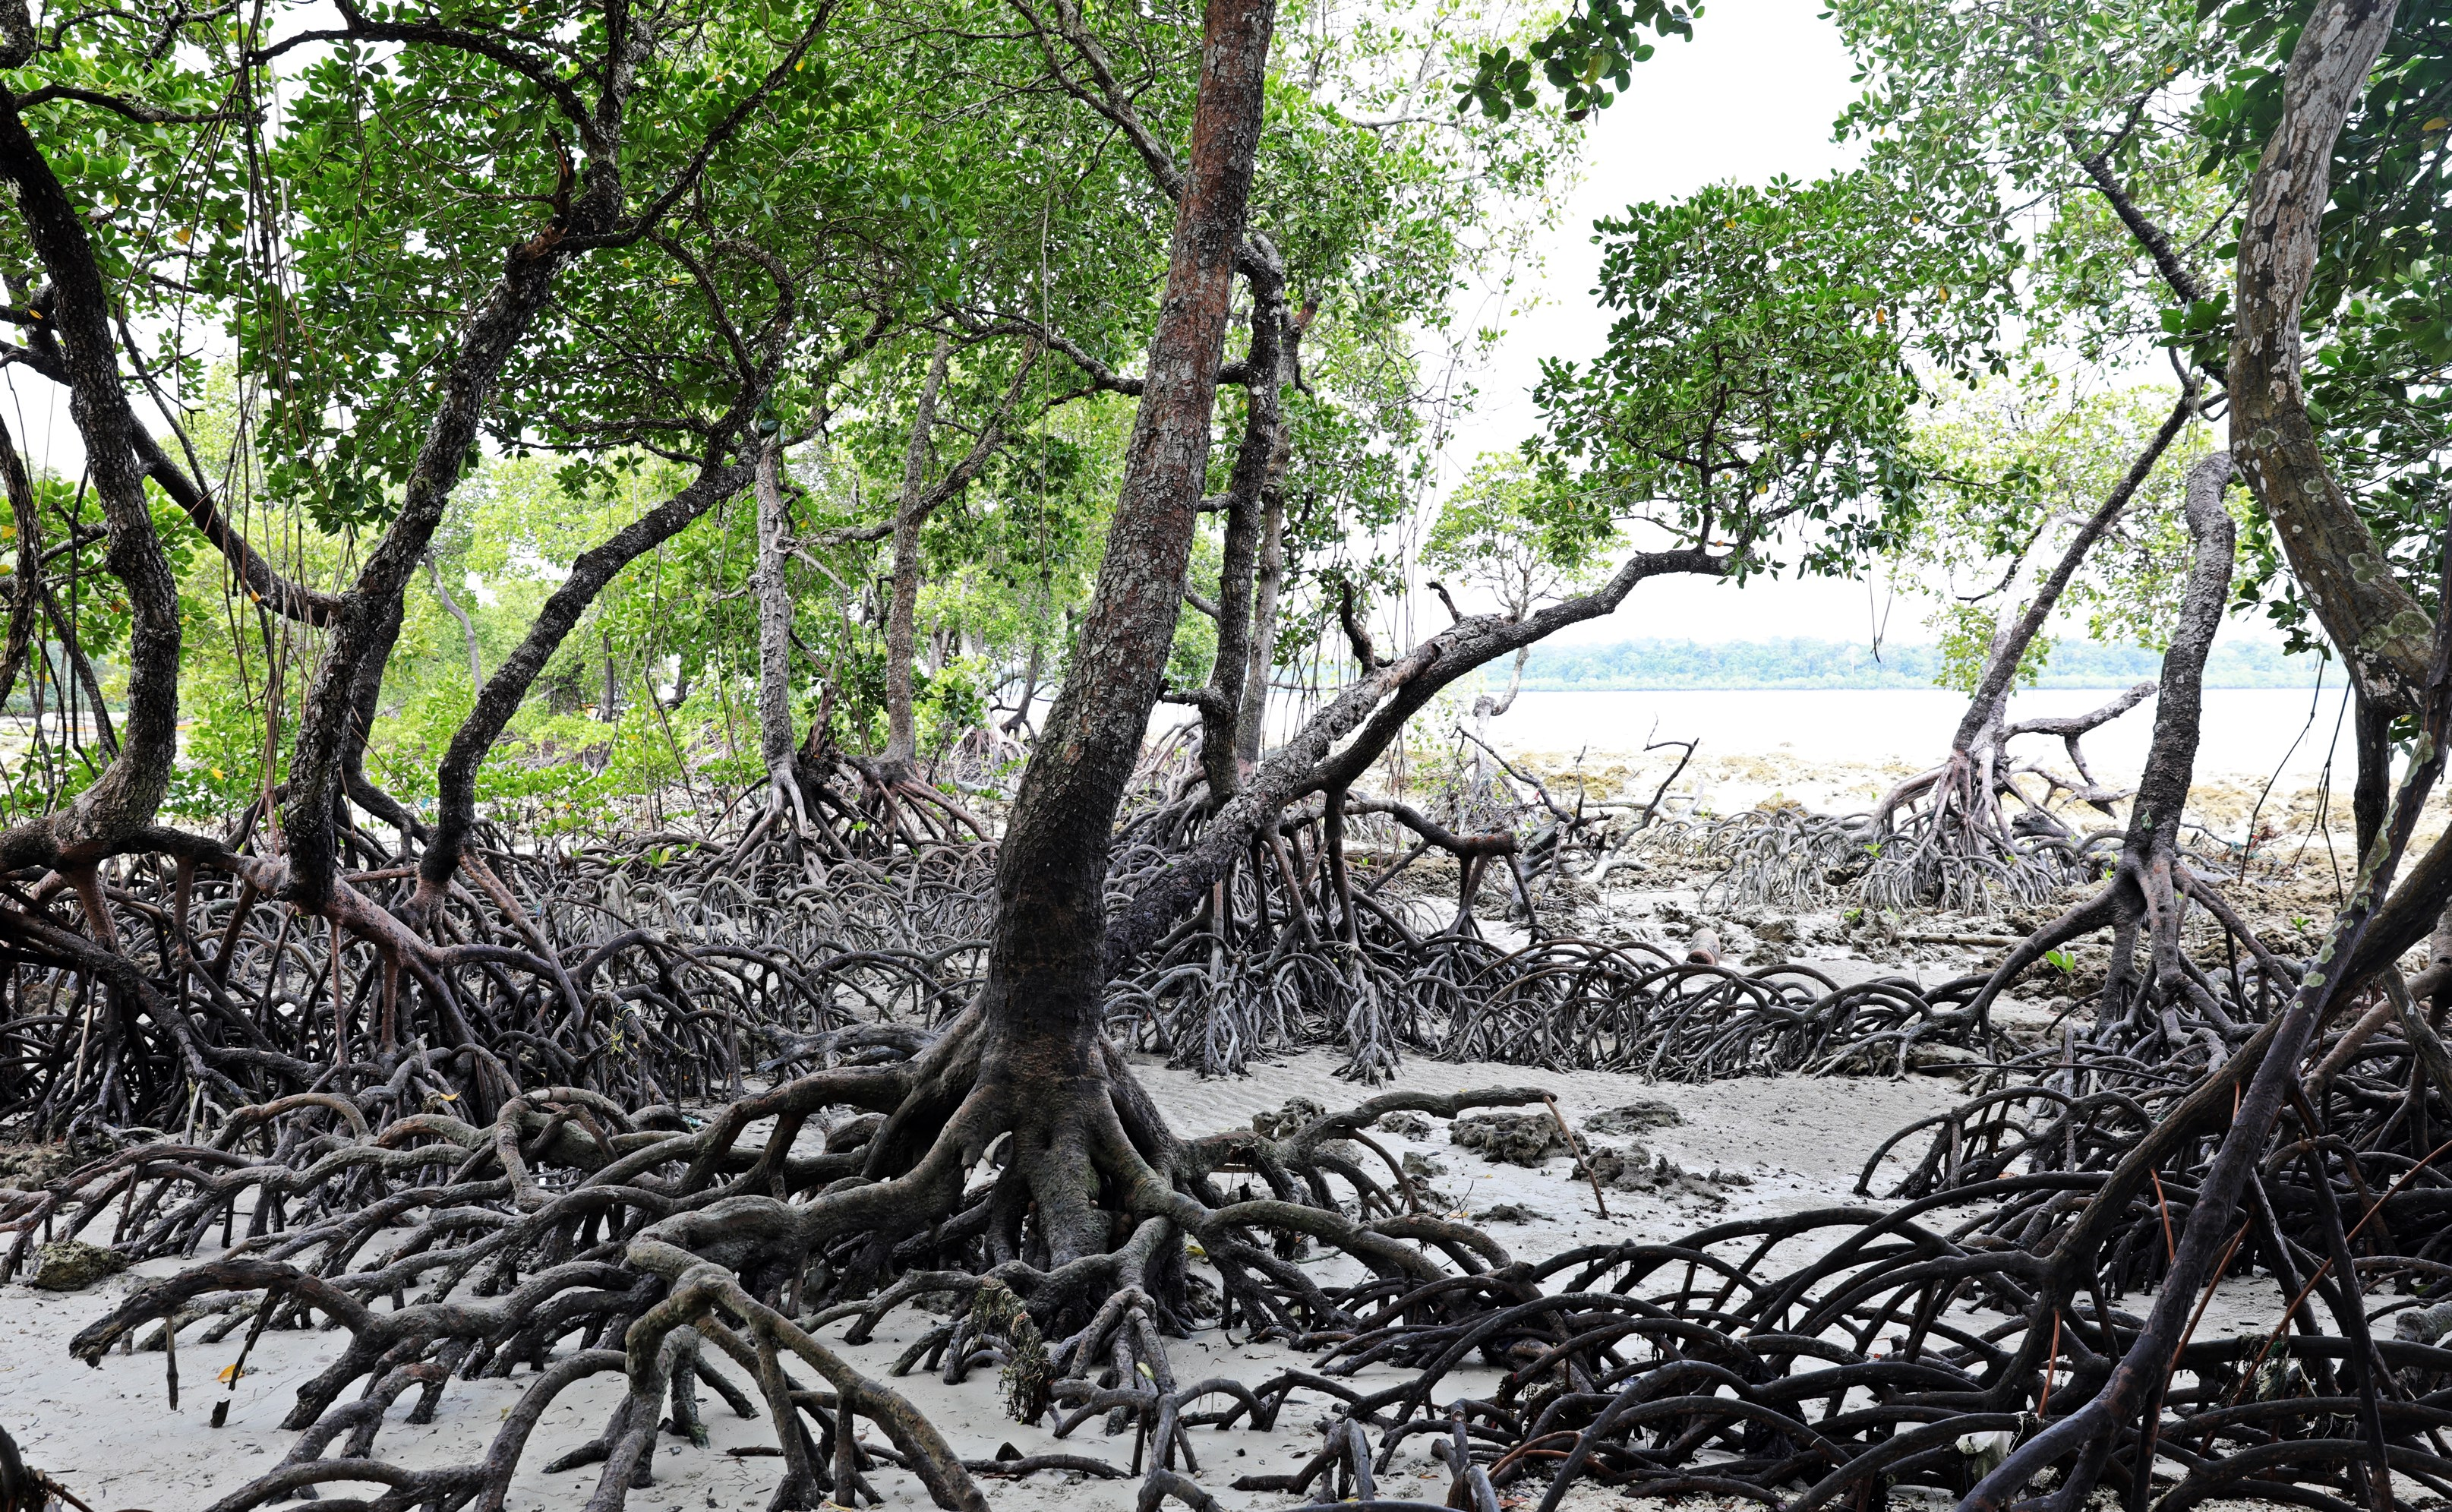 Mangrove forest at low tide